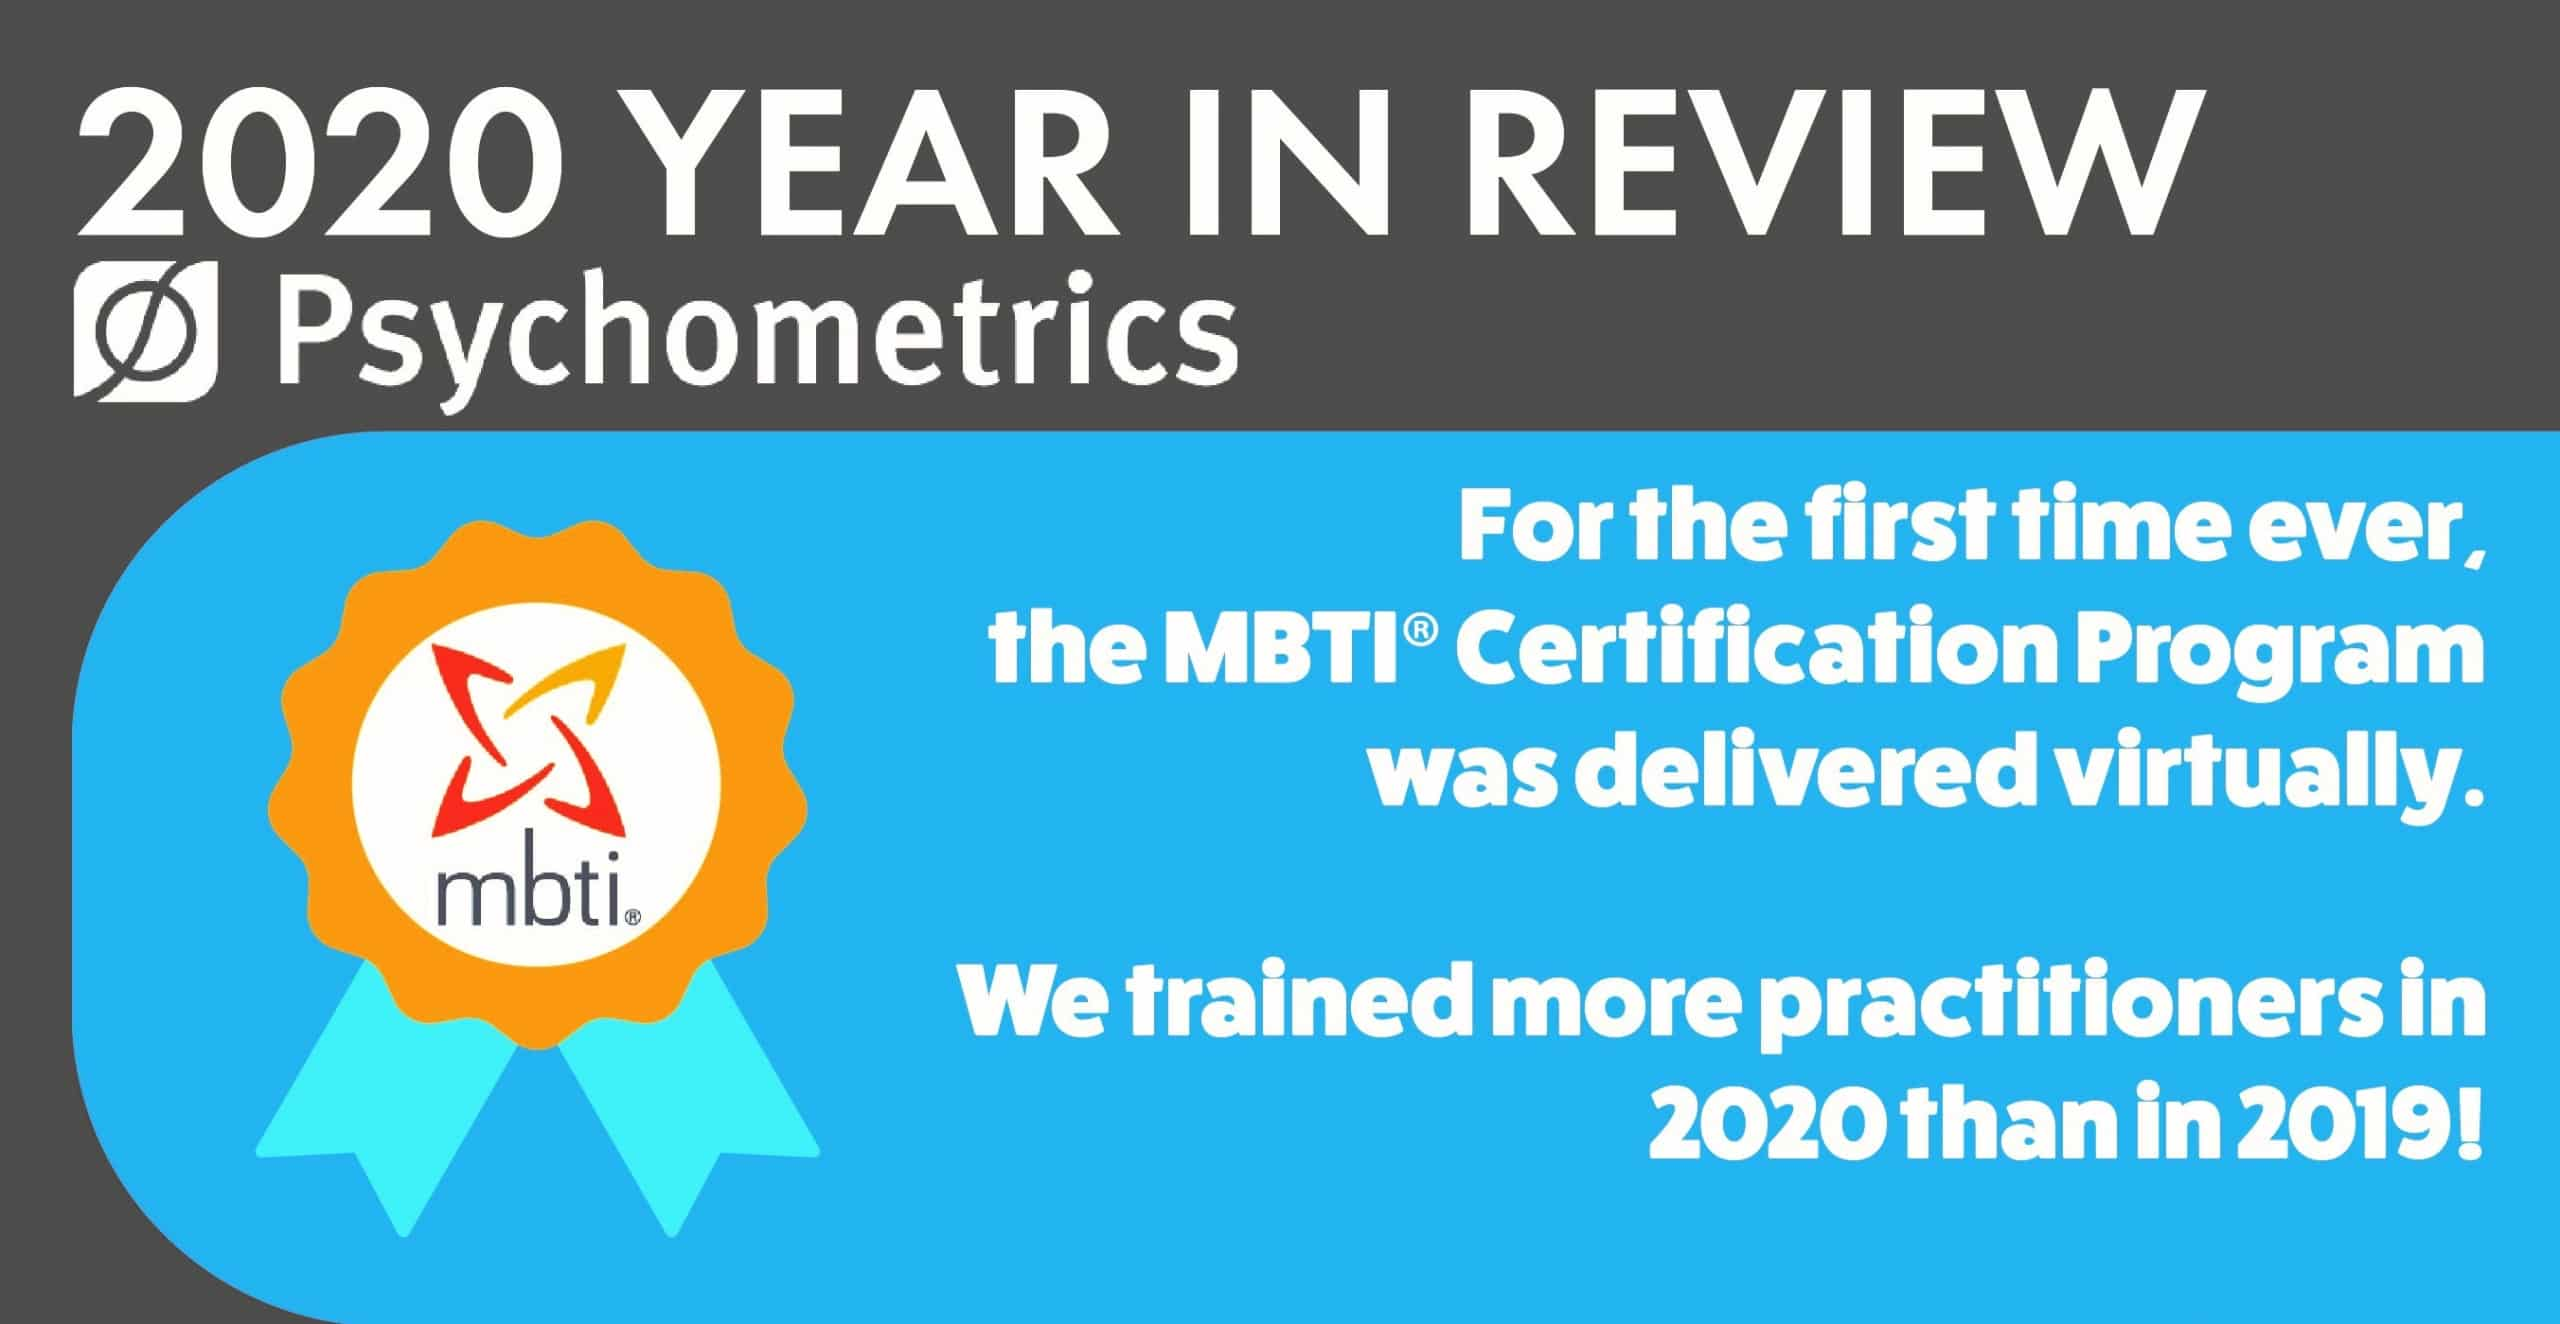 2020 year in review, MBTI Certification Program delivered virtually